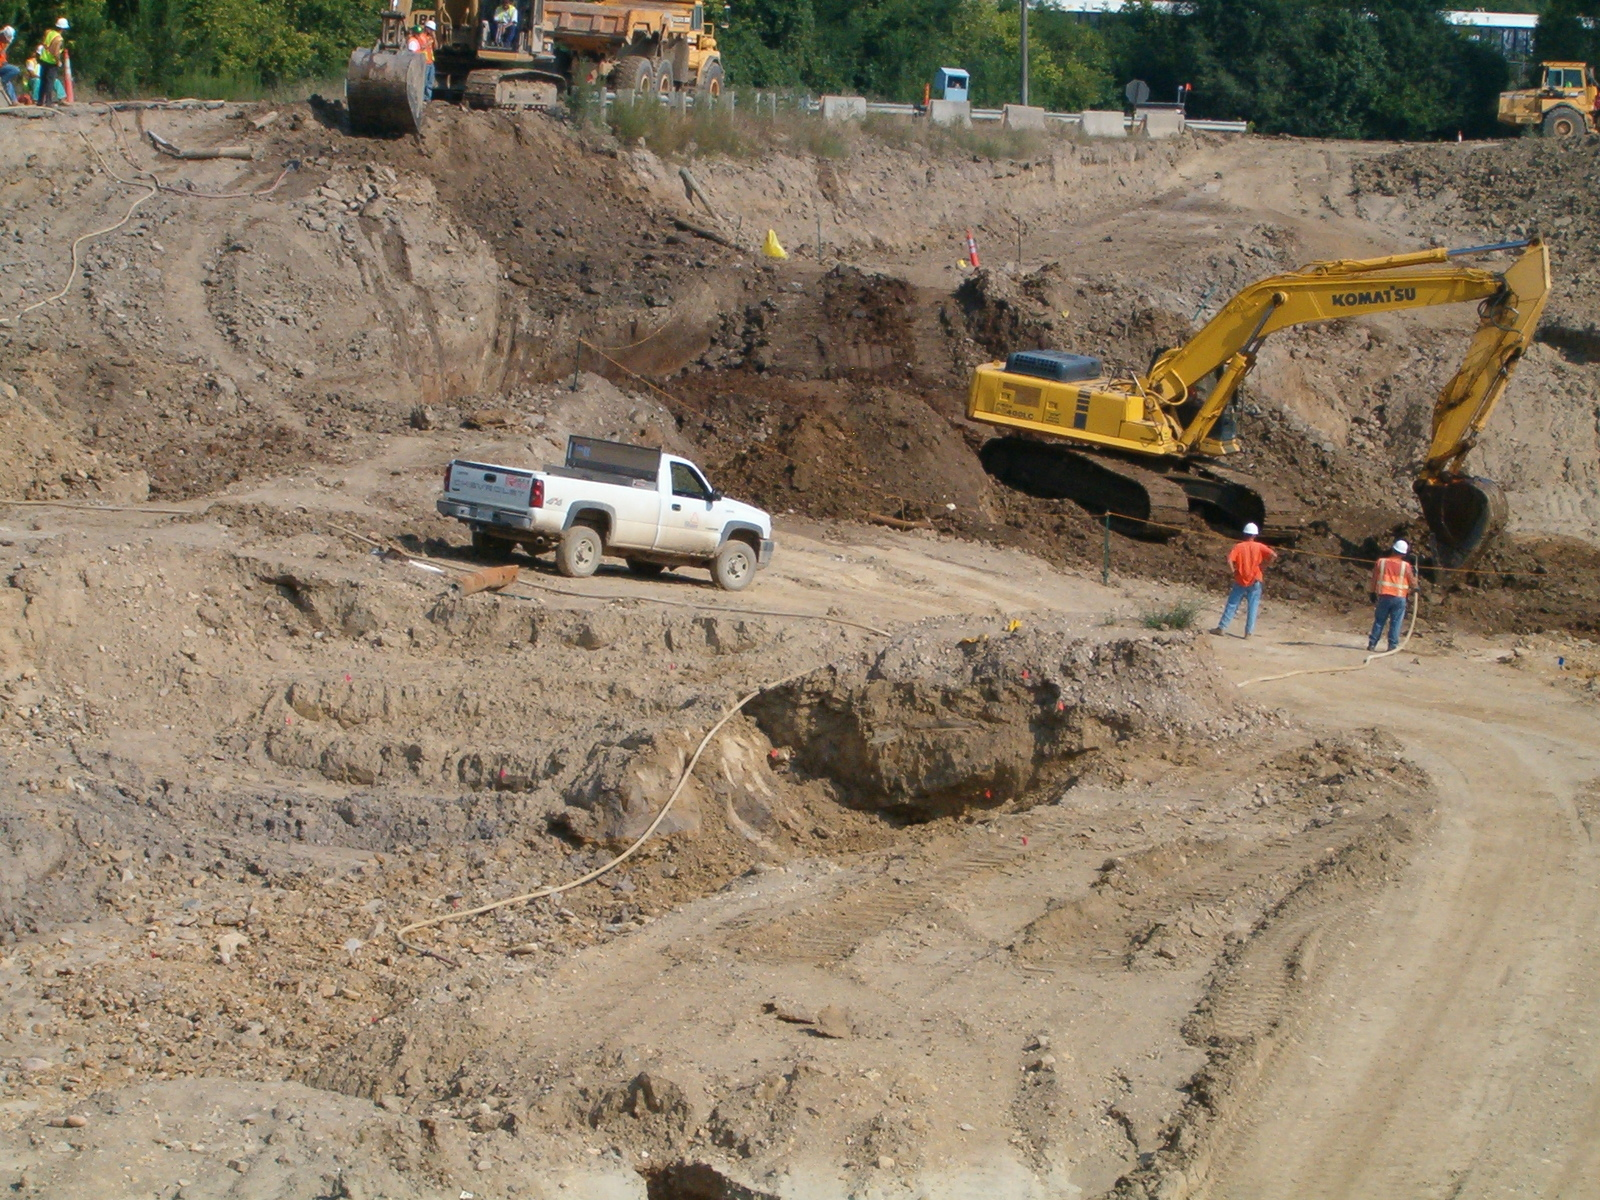 Soil Sample Numbers: 1692, 1693, 1694, and 1695 in excavated area facing Northwest [Operable Unit-1 - Landfill Area]